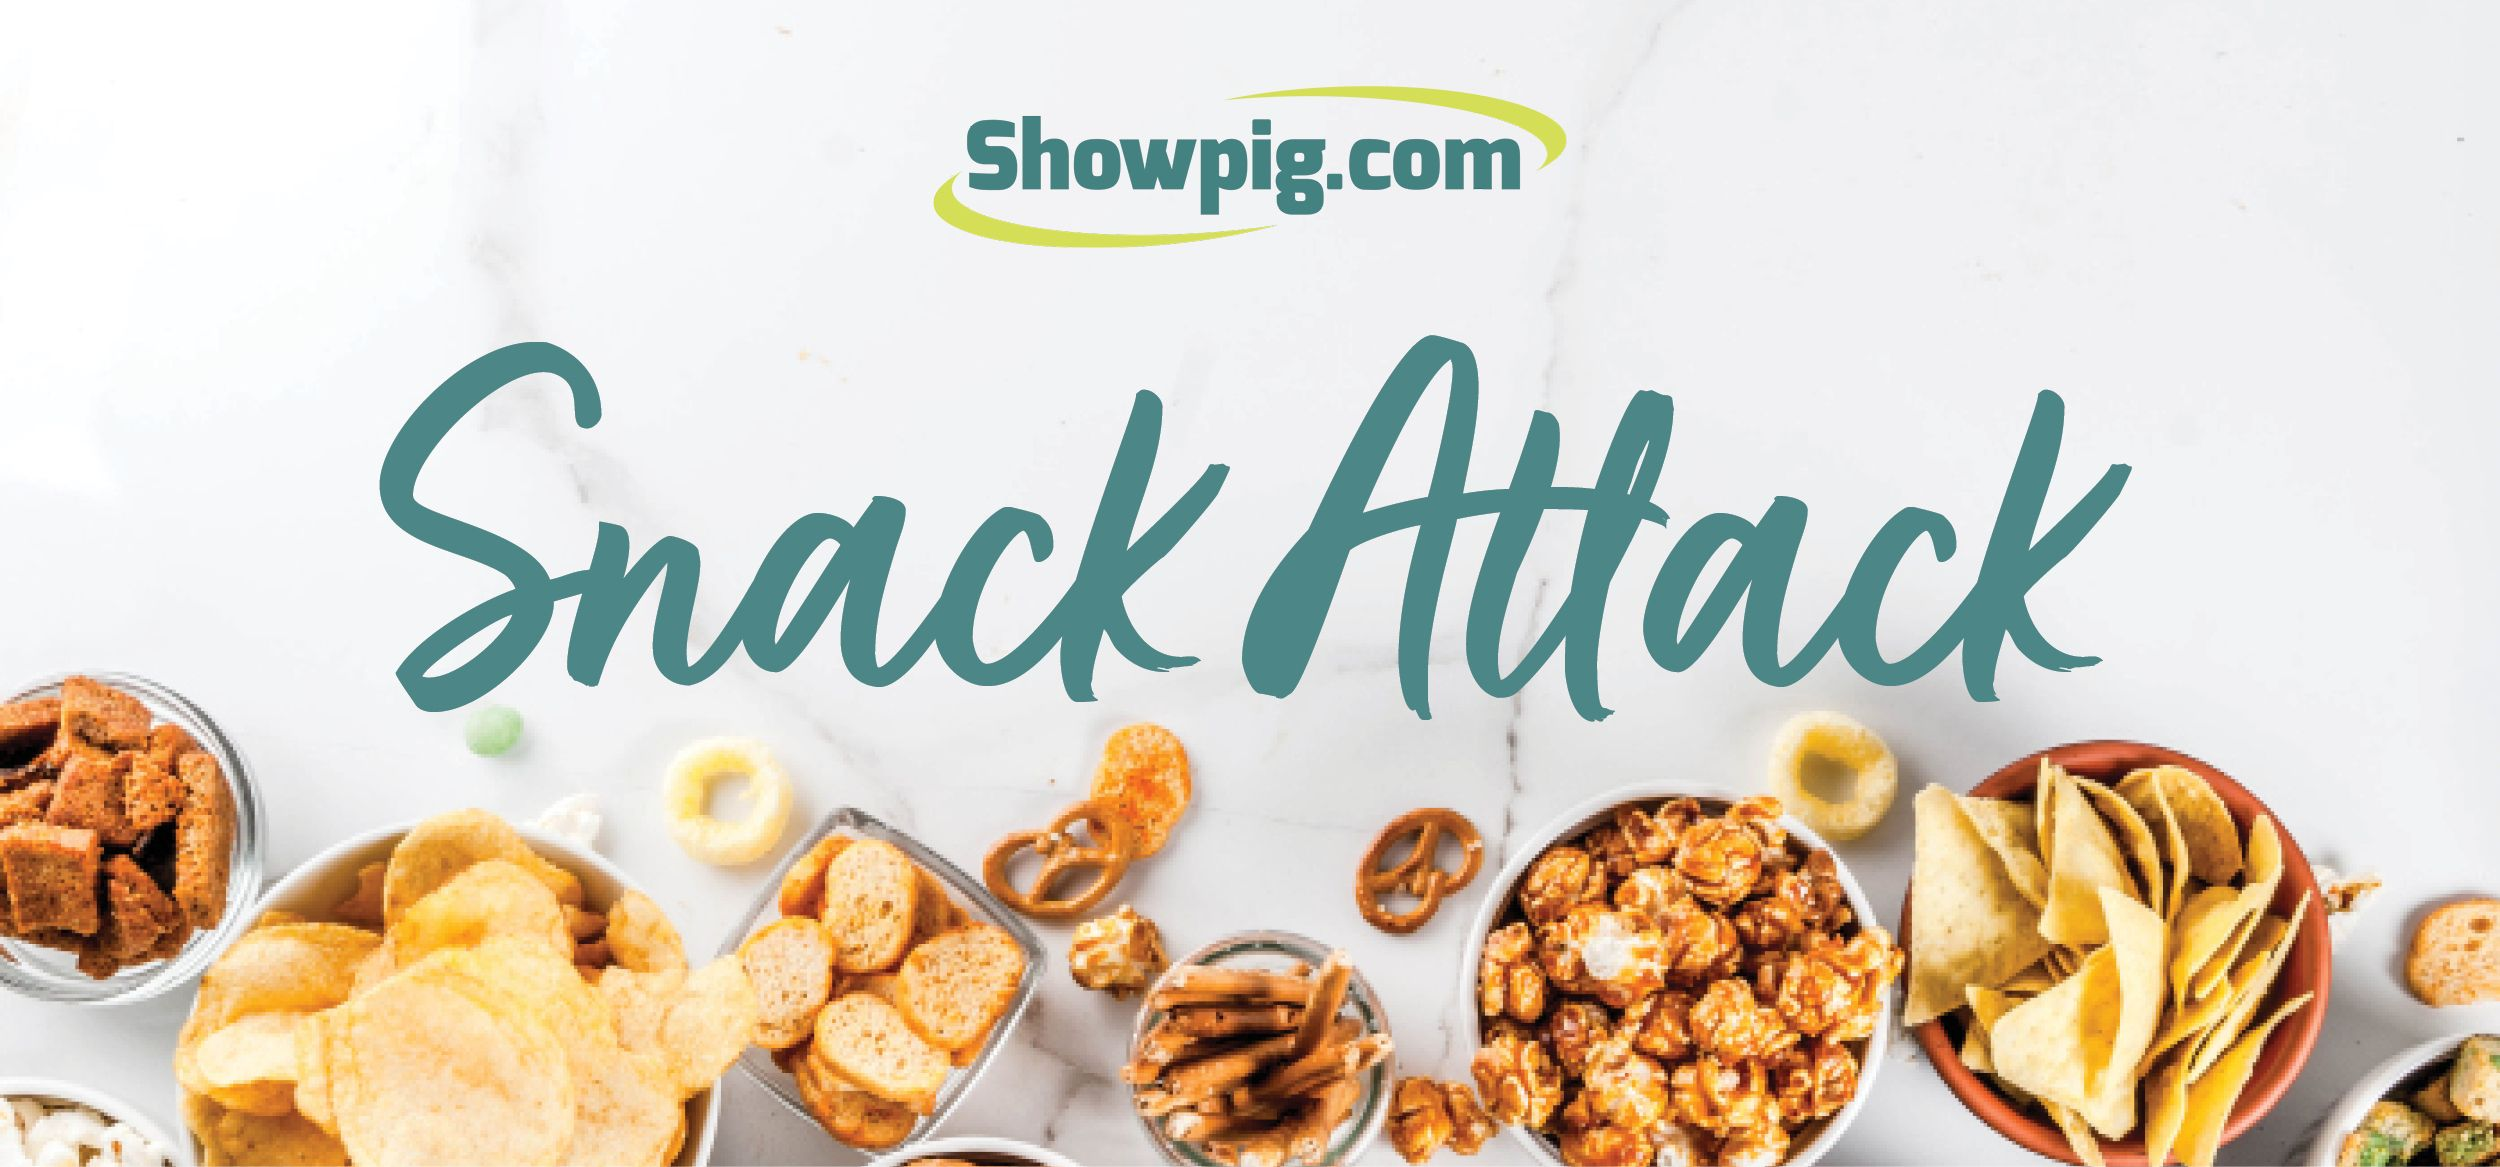 Featured image for the article titled Snack Attack